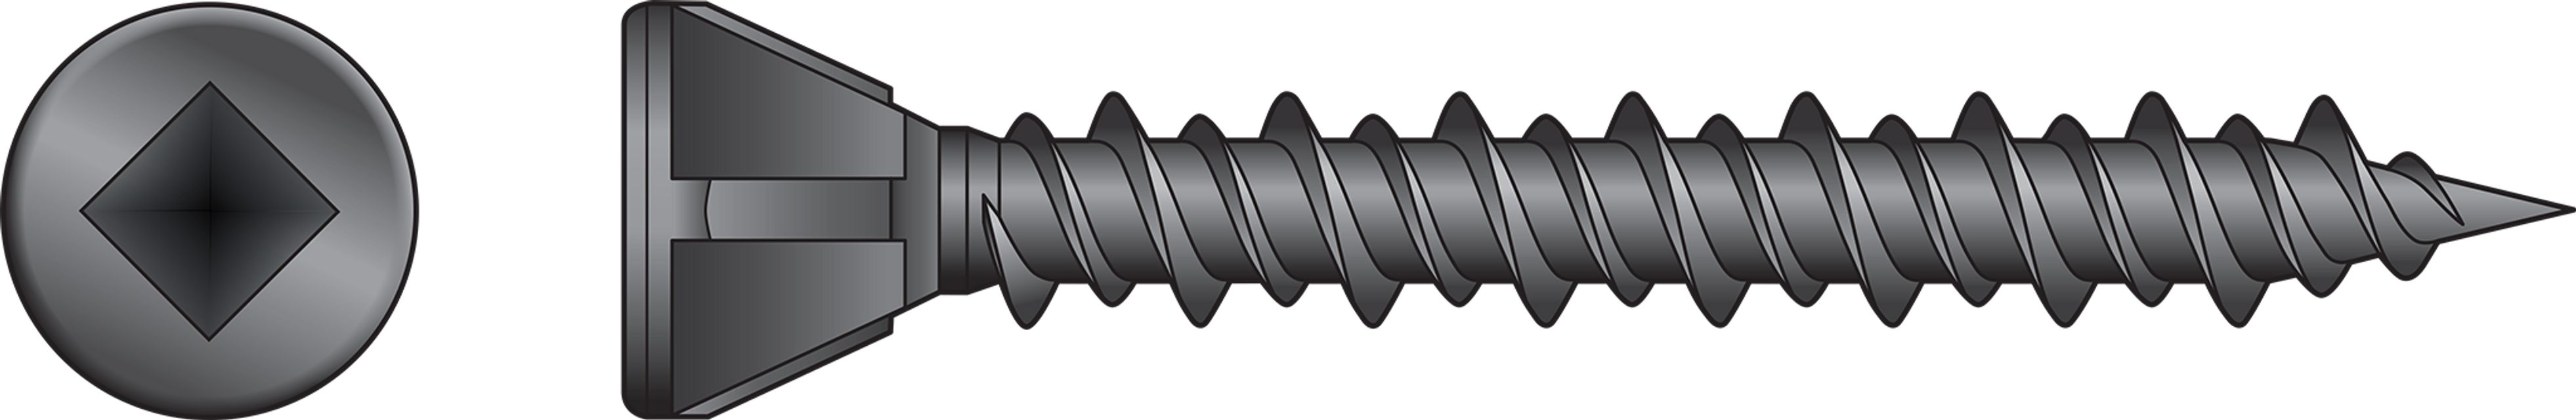 MTH Underlayment Screw